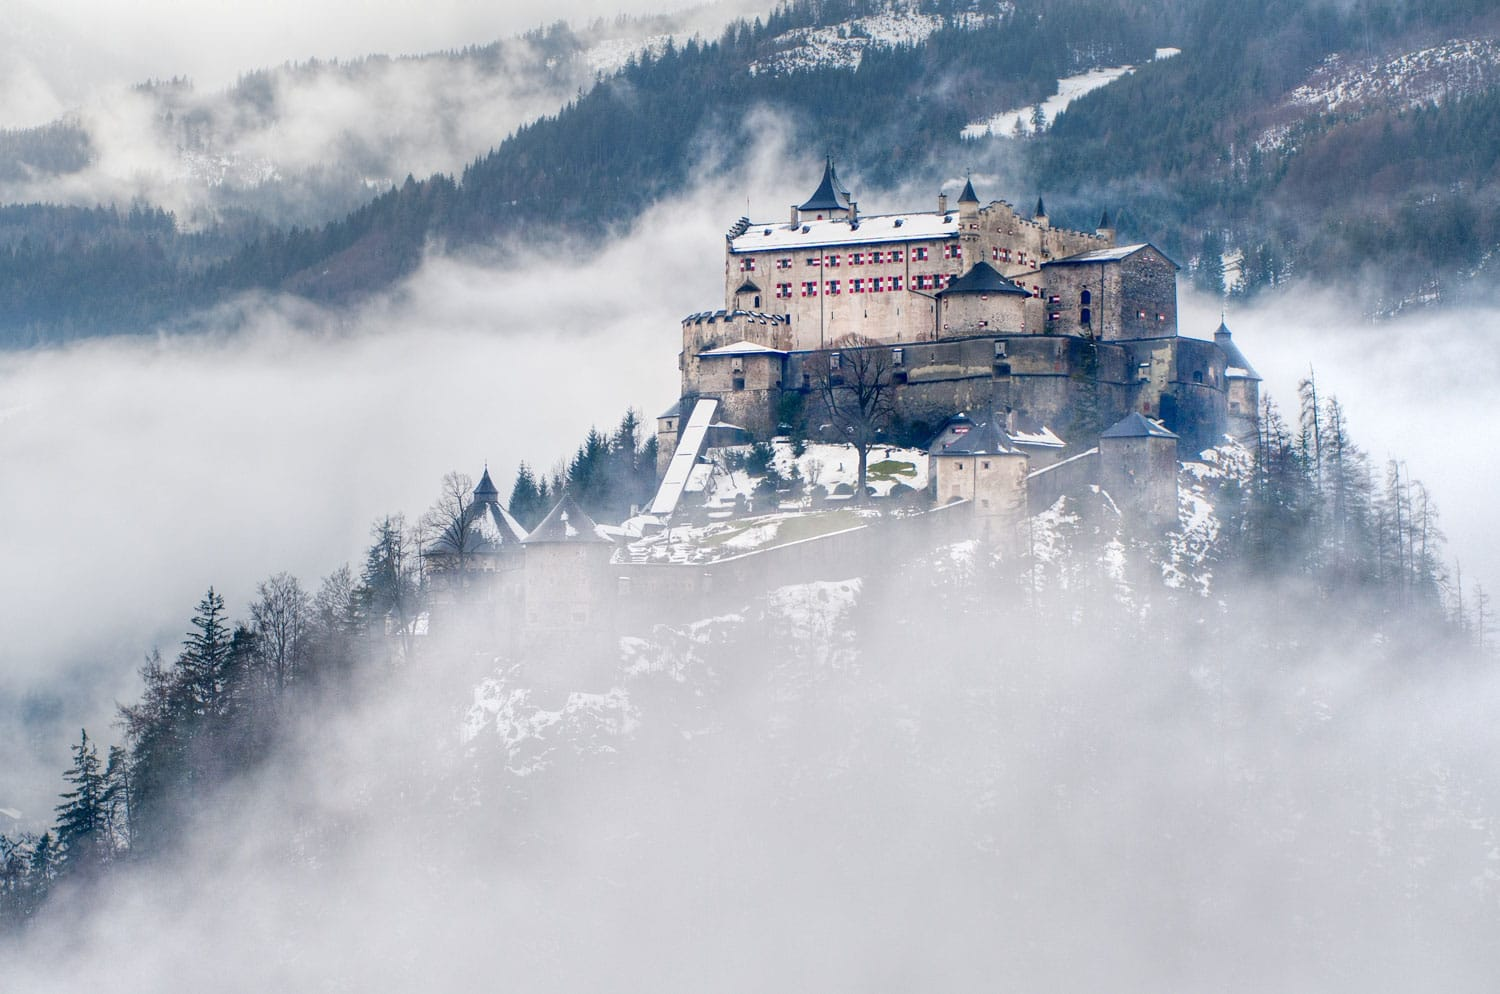 Castle Hohenwerfen by Salzburg high over clouds on a misty mountain in the Alps